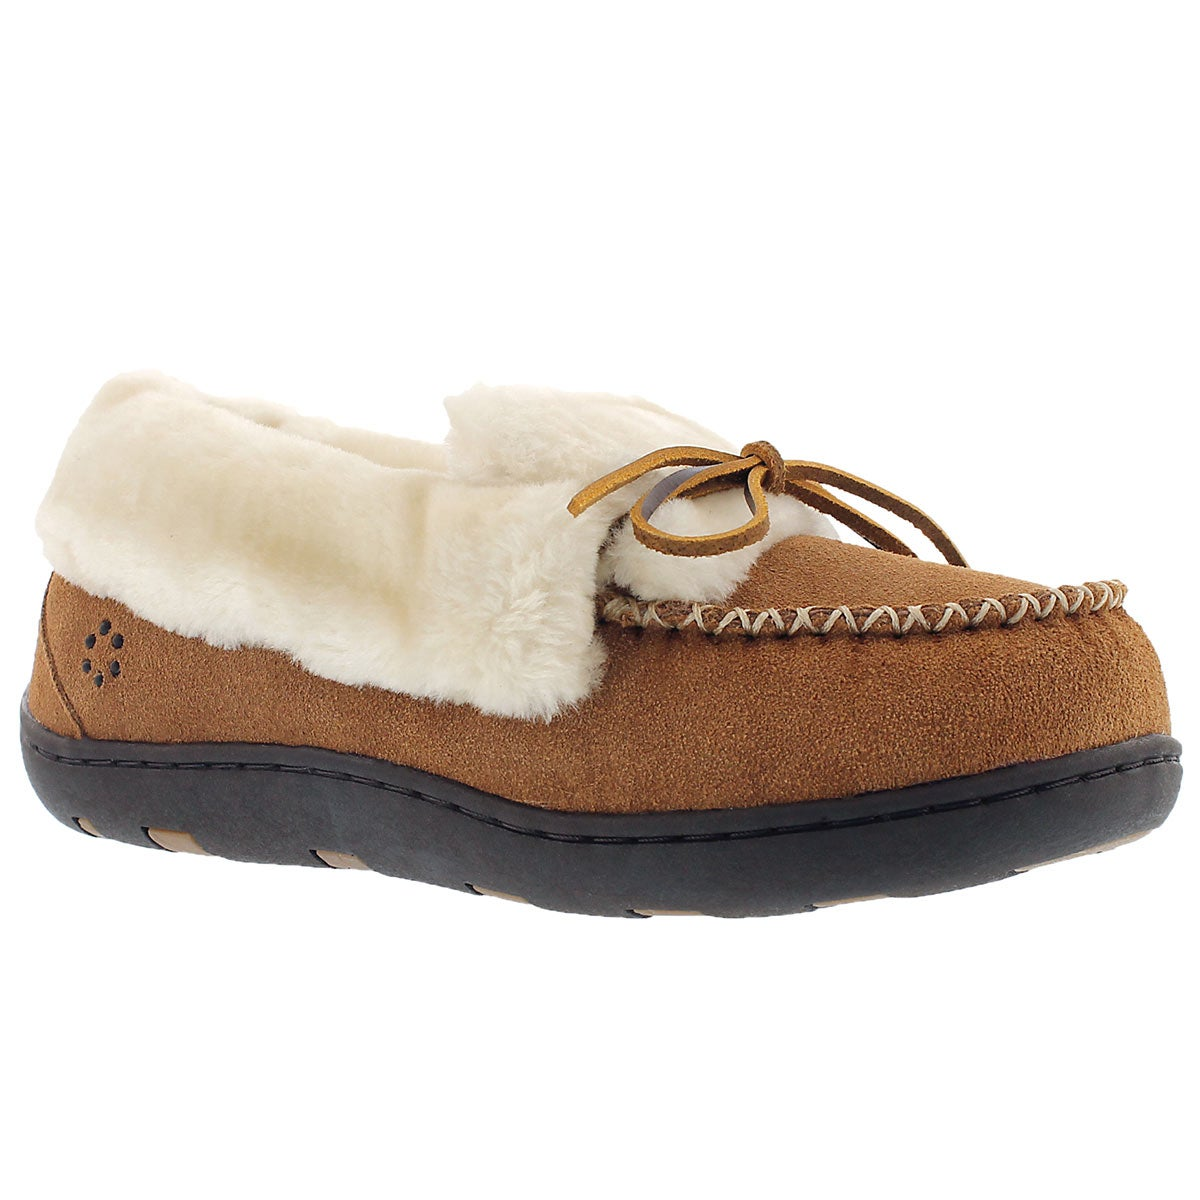 Women's LAURIN hashbrown lace up moccasins